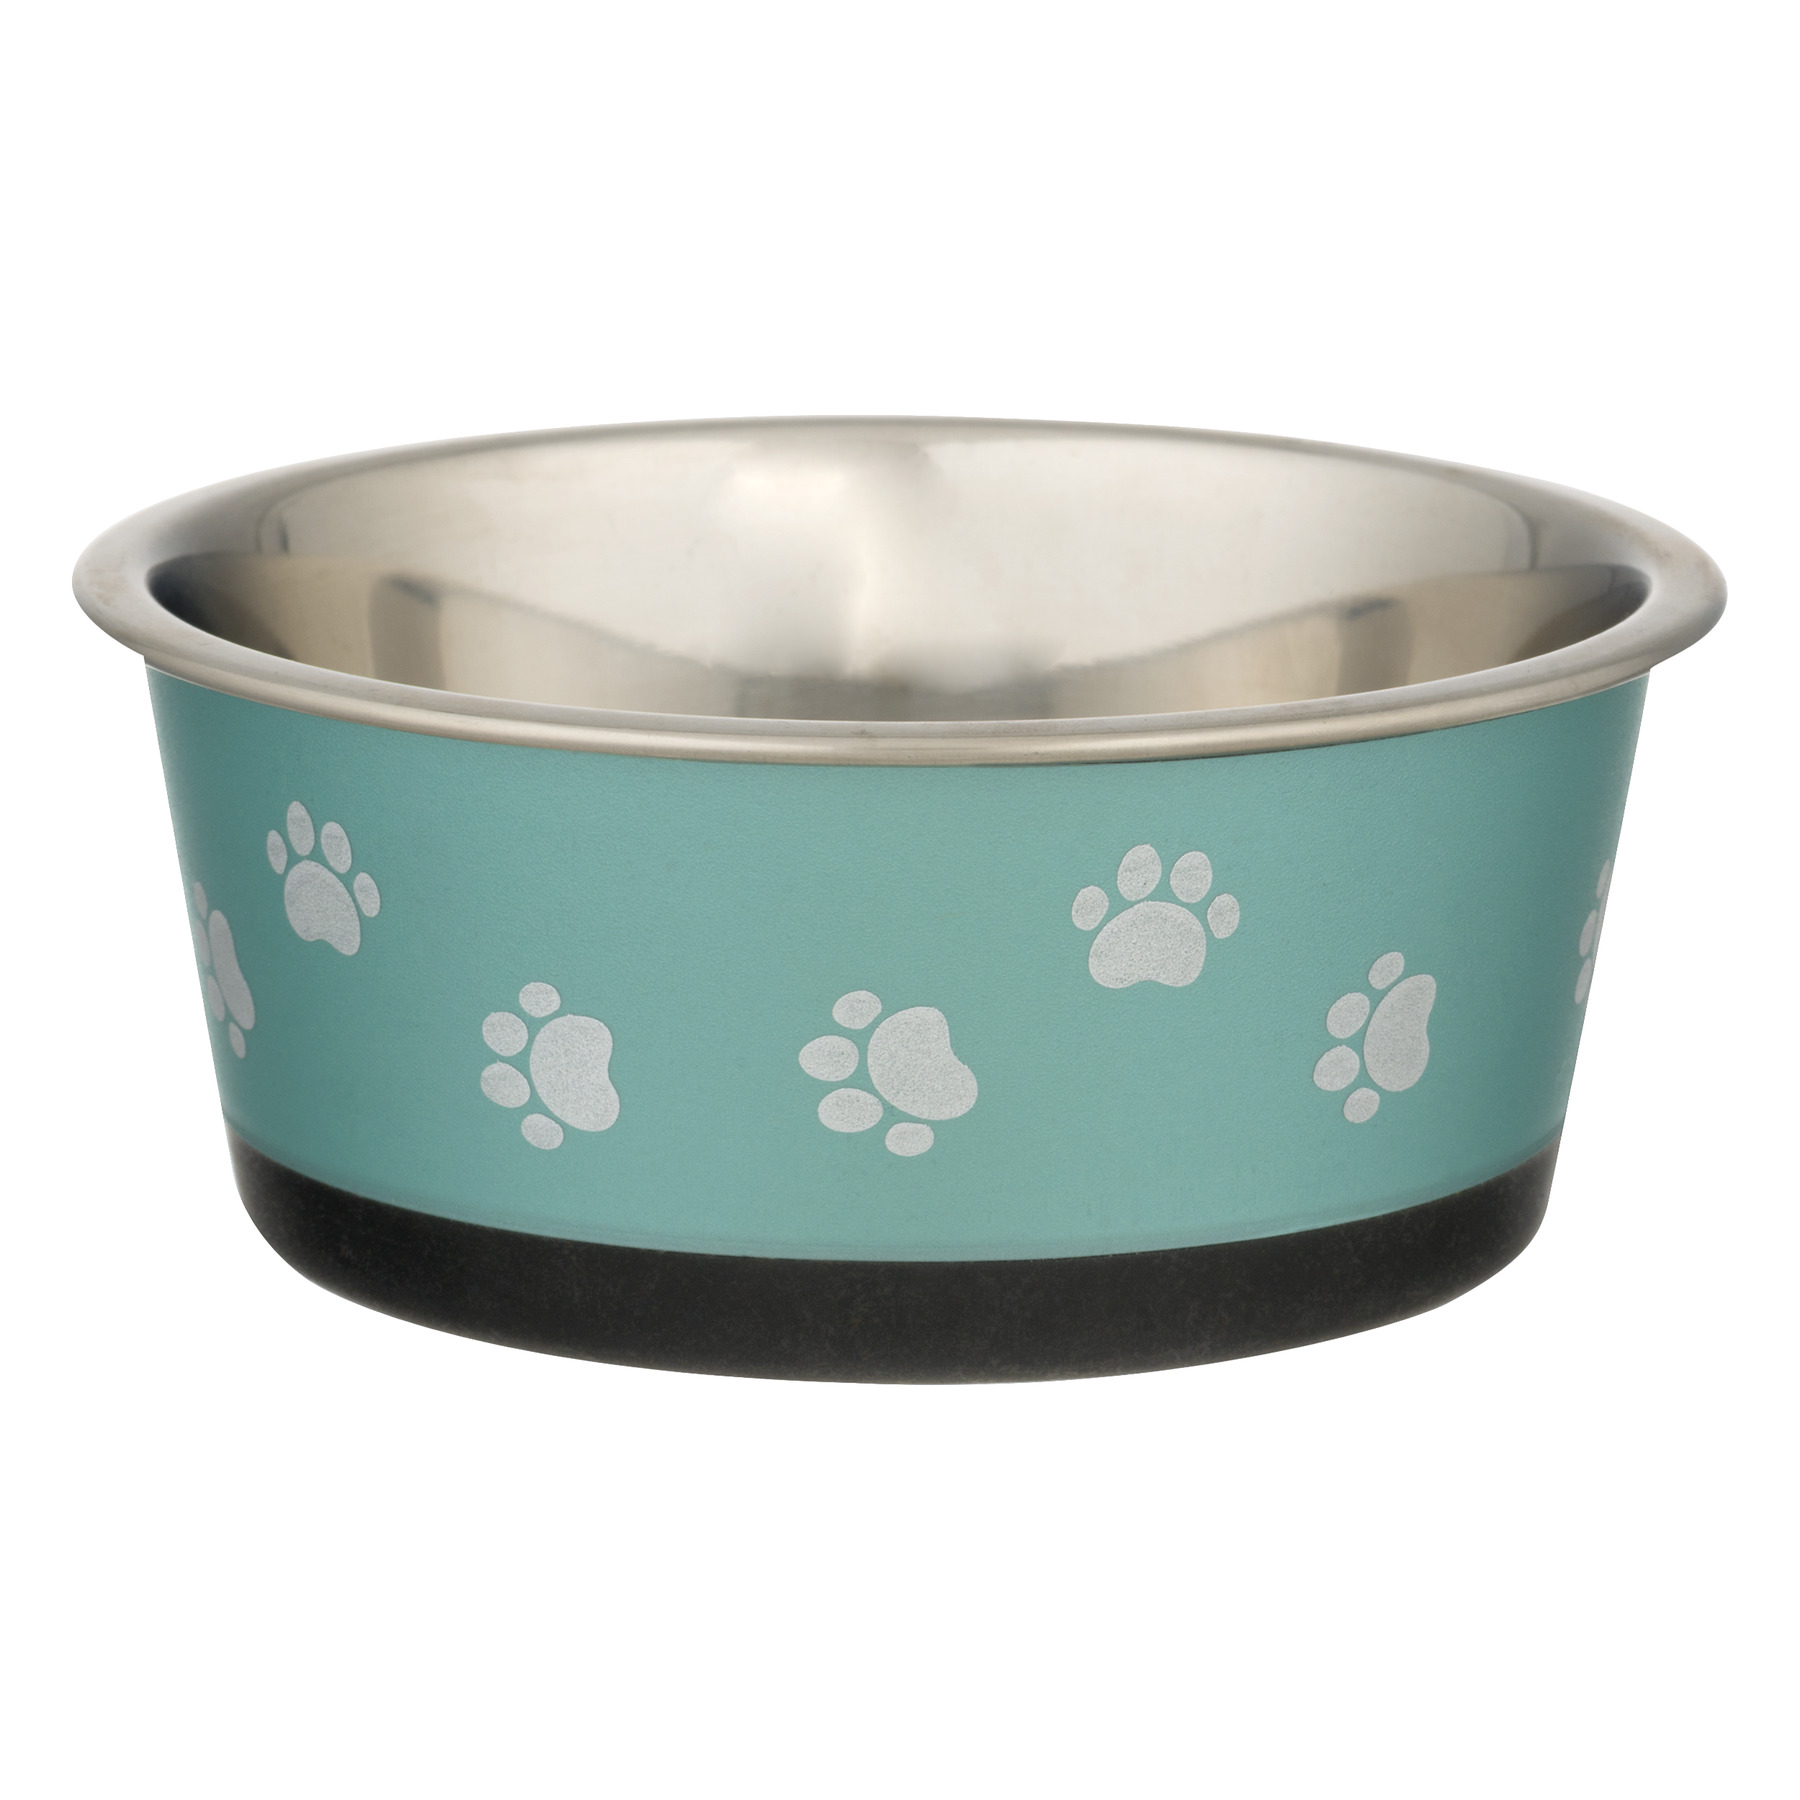 Pet Zone Deluxe Stainless Steel Bowl Small, 1.0 CT